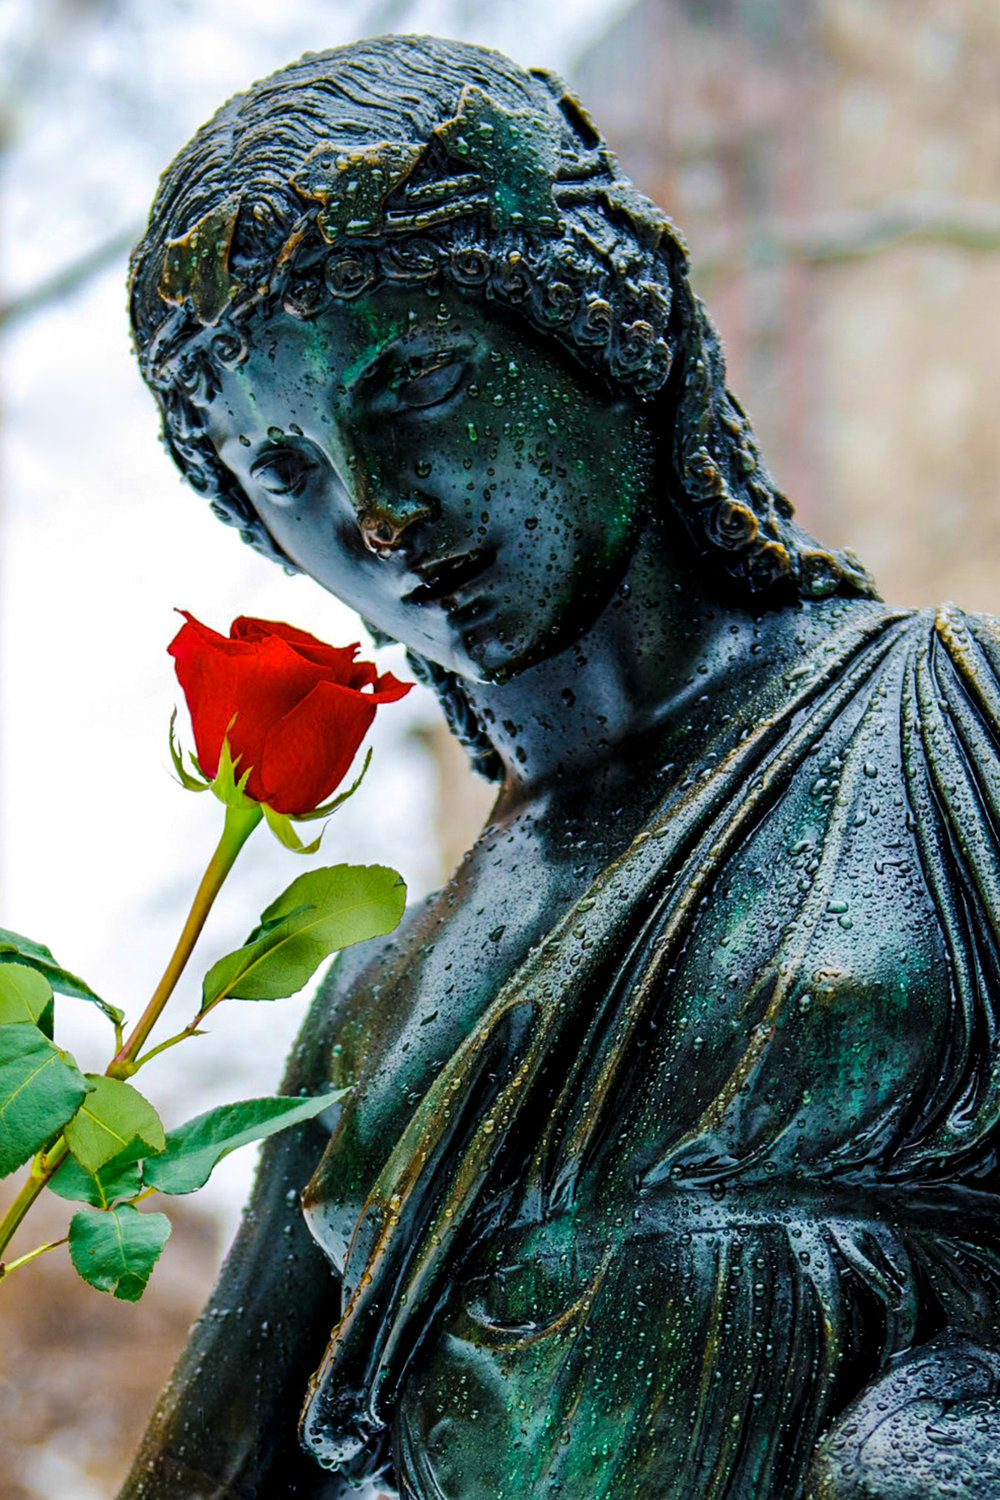 A rose for the sculpture of a woman in Rittenhouse Square on Valentines Day 2014.